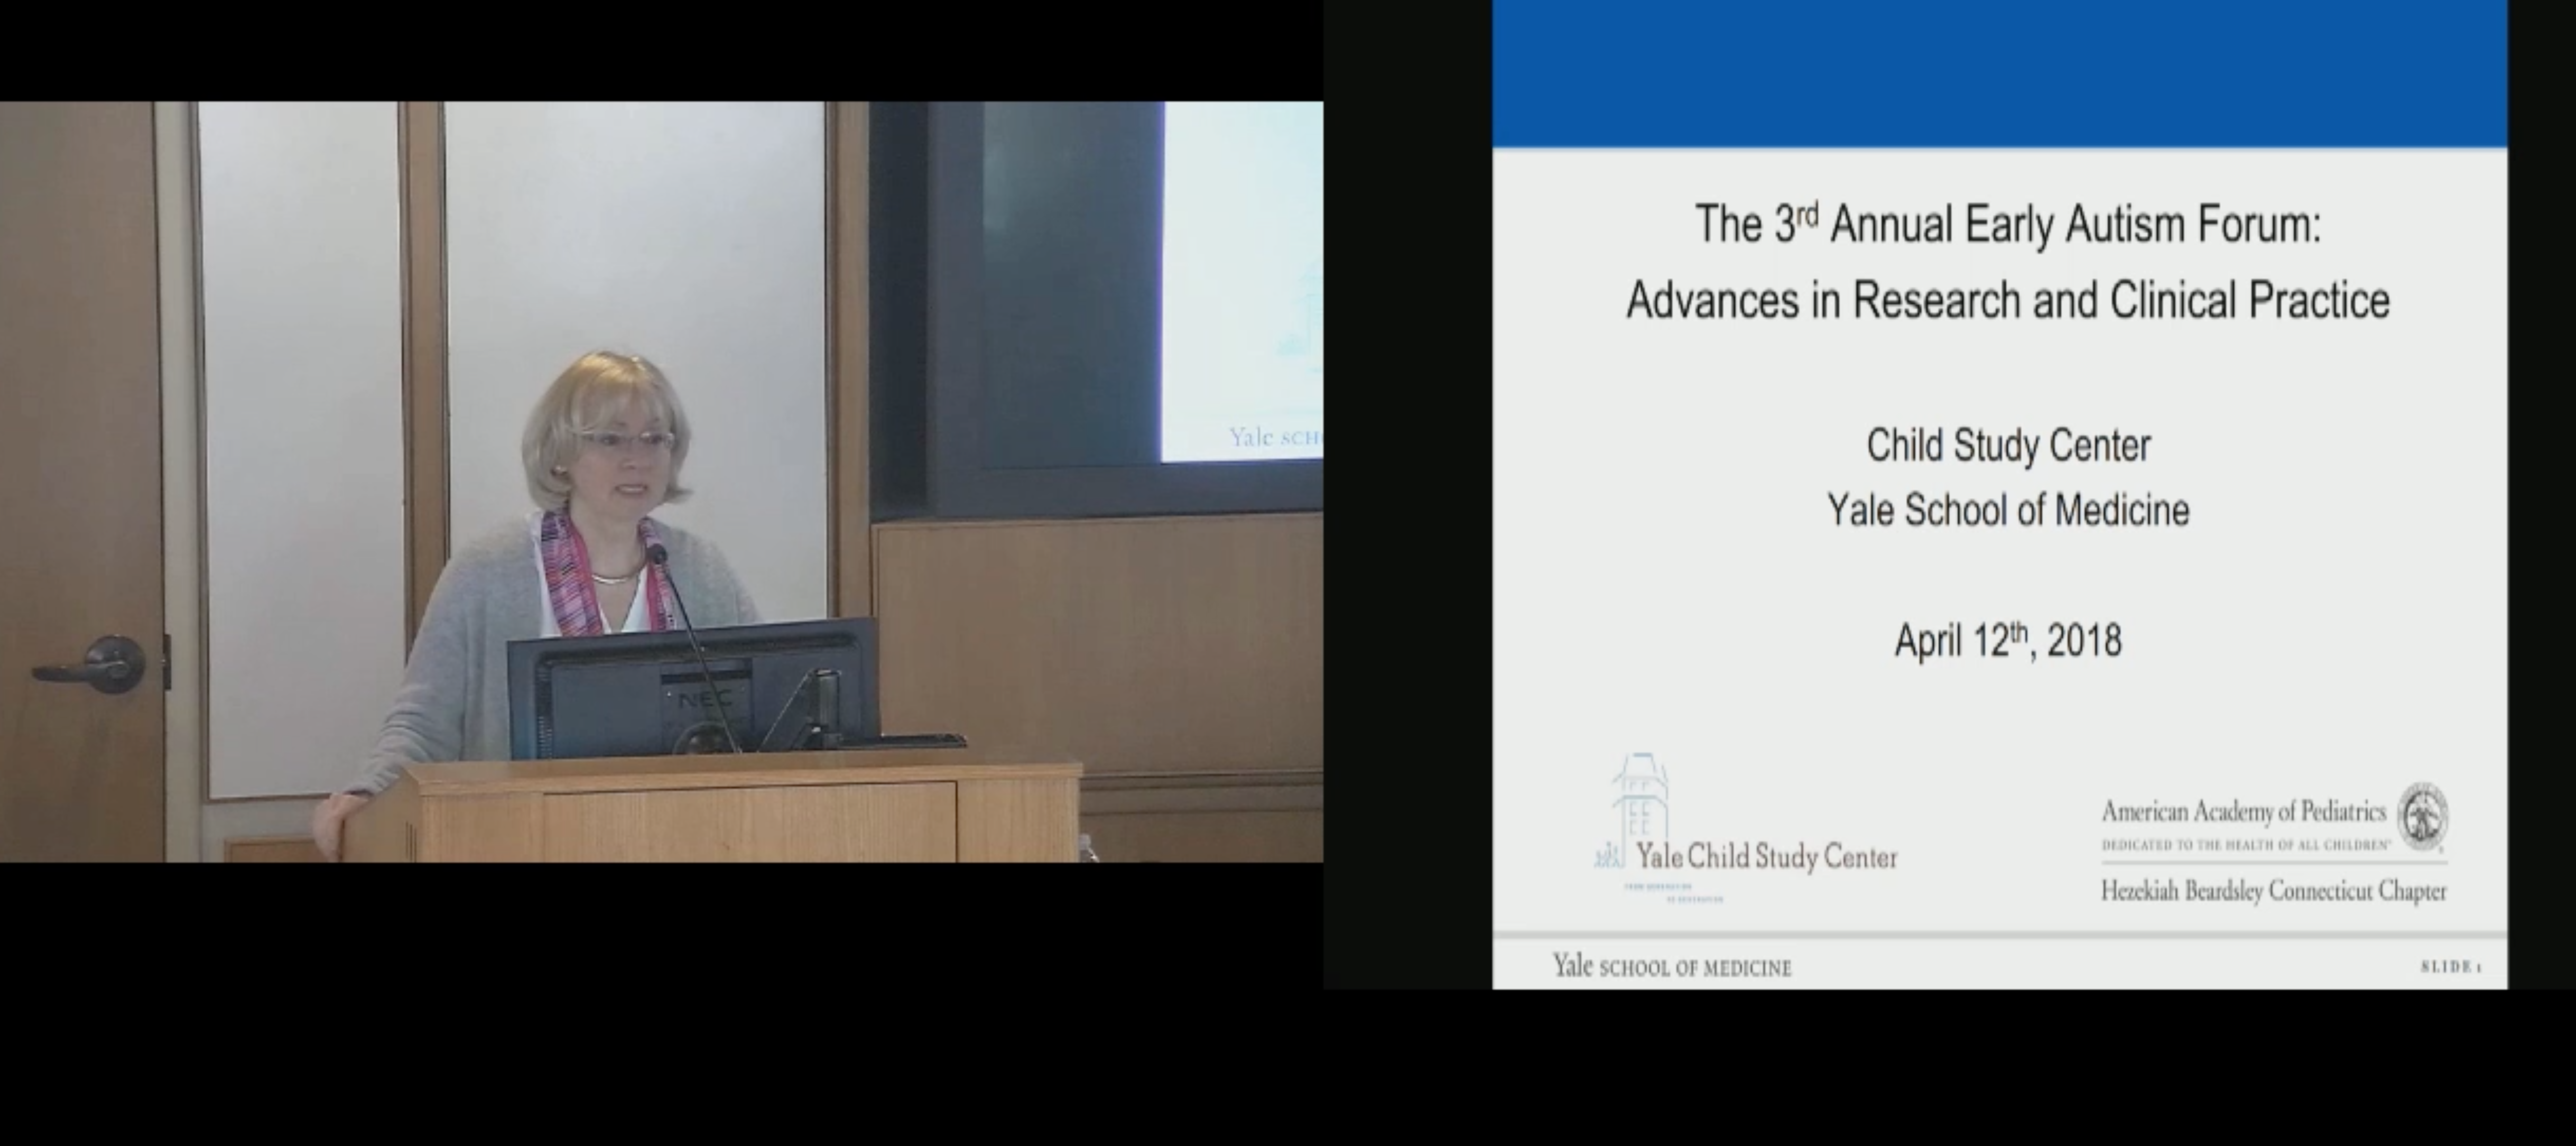 The 3rd Annual Early Autism Forum: Advances in Research and Clinical Practice